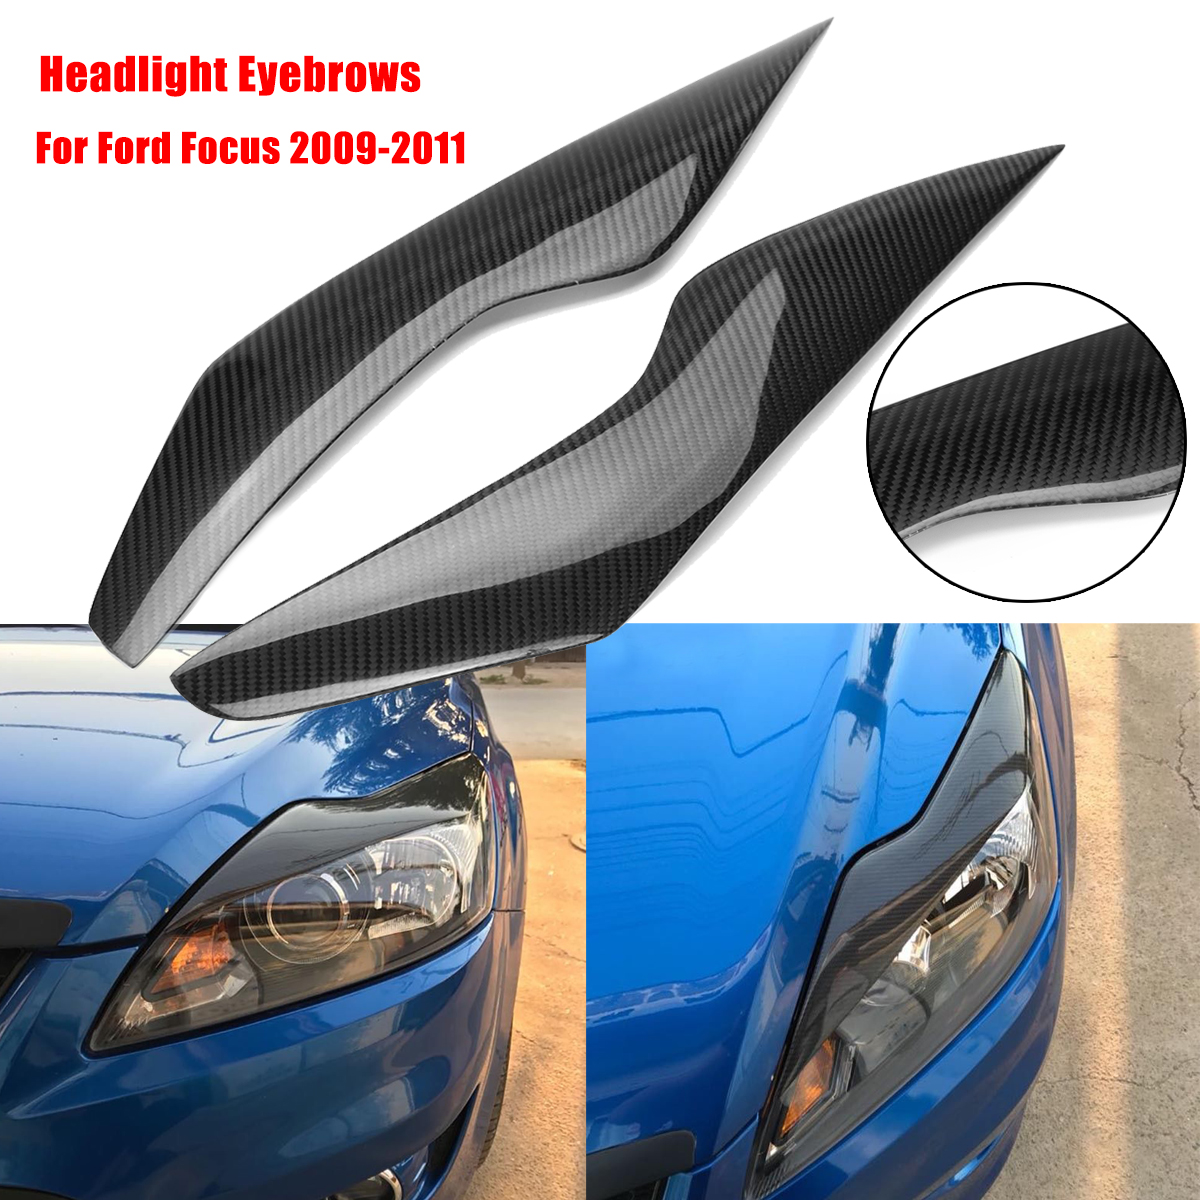 2pcs Carbon Fiber Headlight Eyebrows Eyelids Headlamp Shell Cover For Ford/Focus 2009-2011